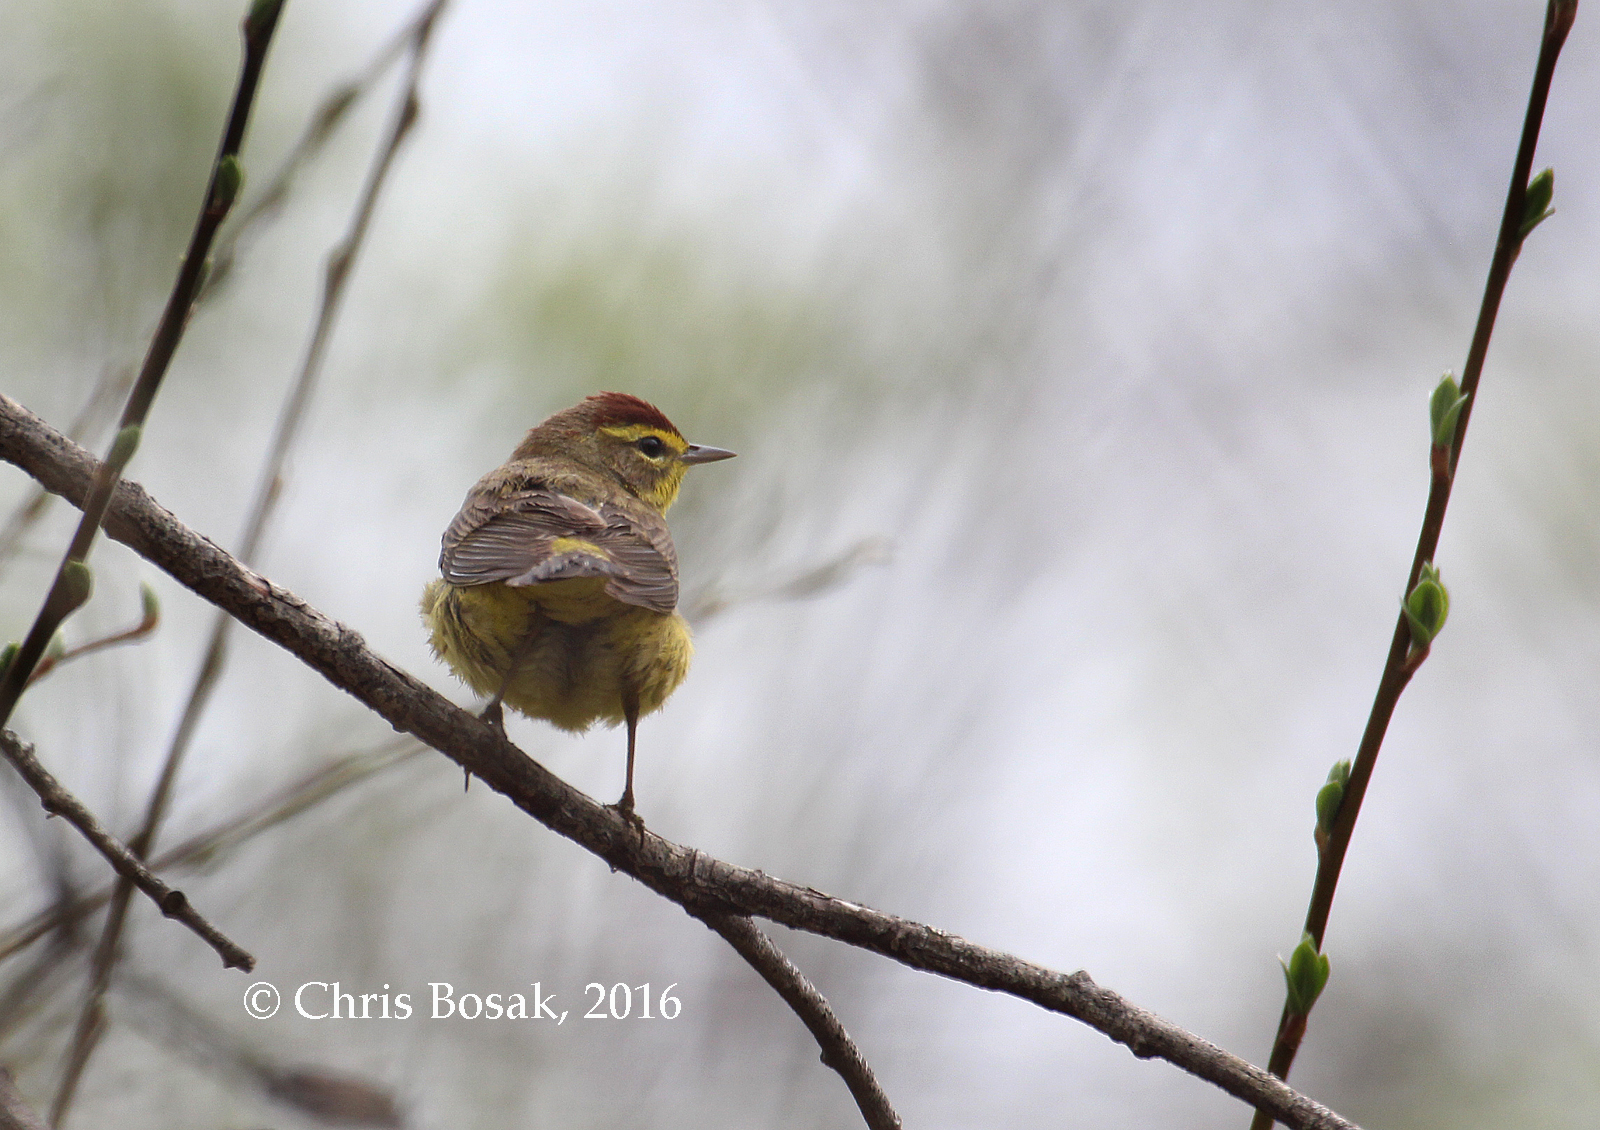 Photo by Chris Bosak A Palm Warbler perches among pussy willows at Selleck's Woods in Darien, Conn., April 2016.